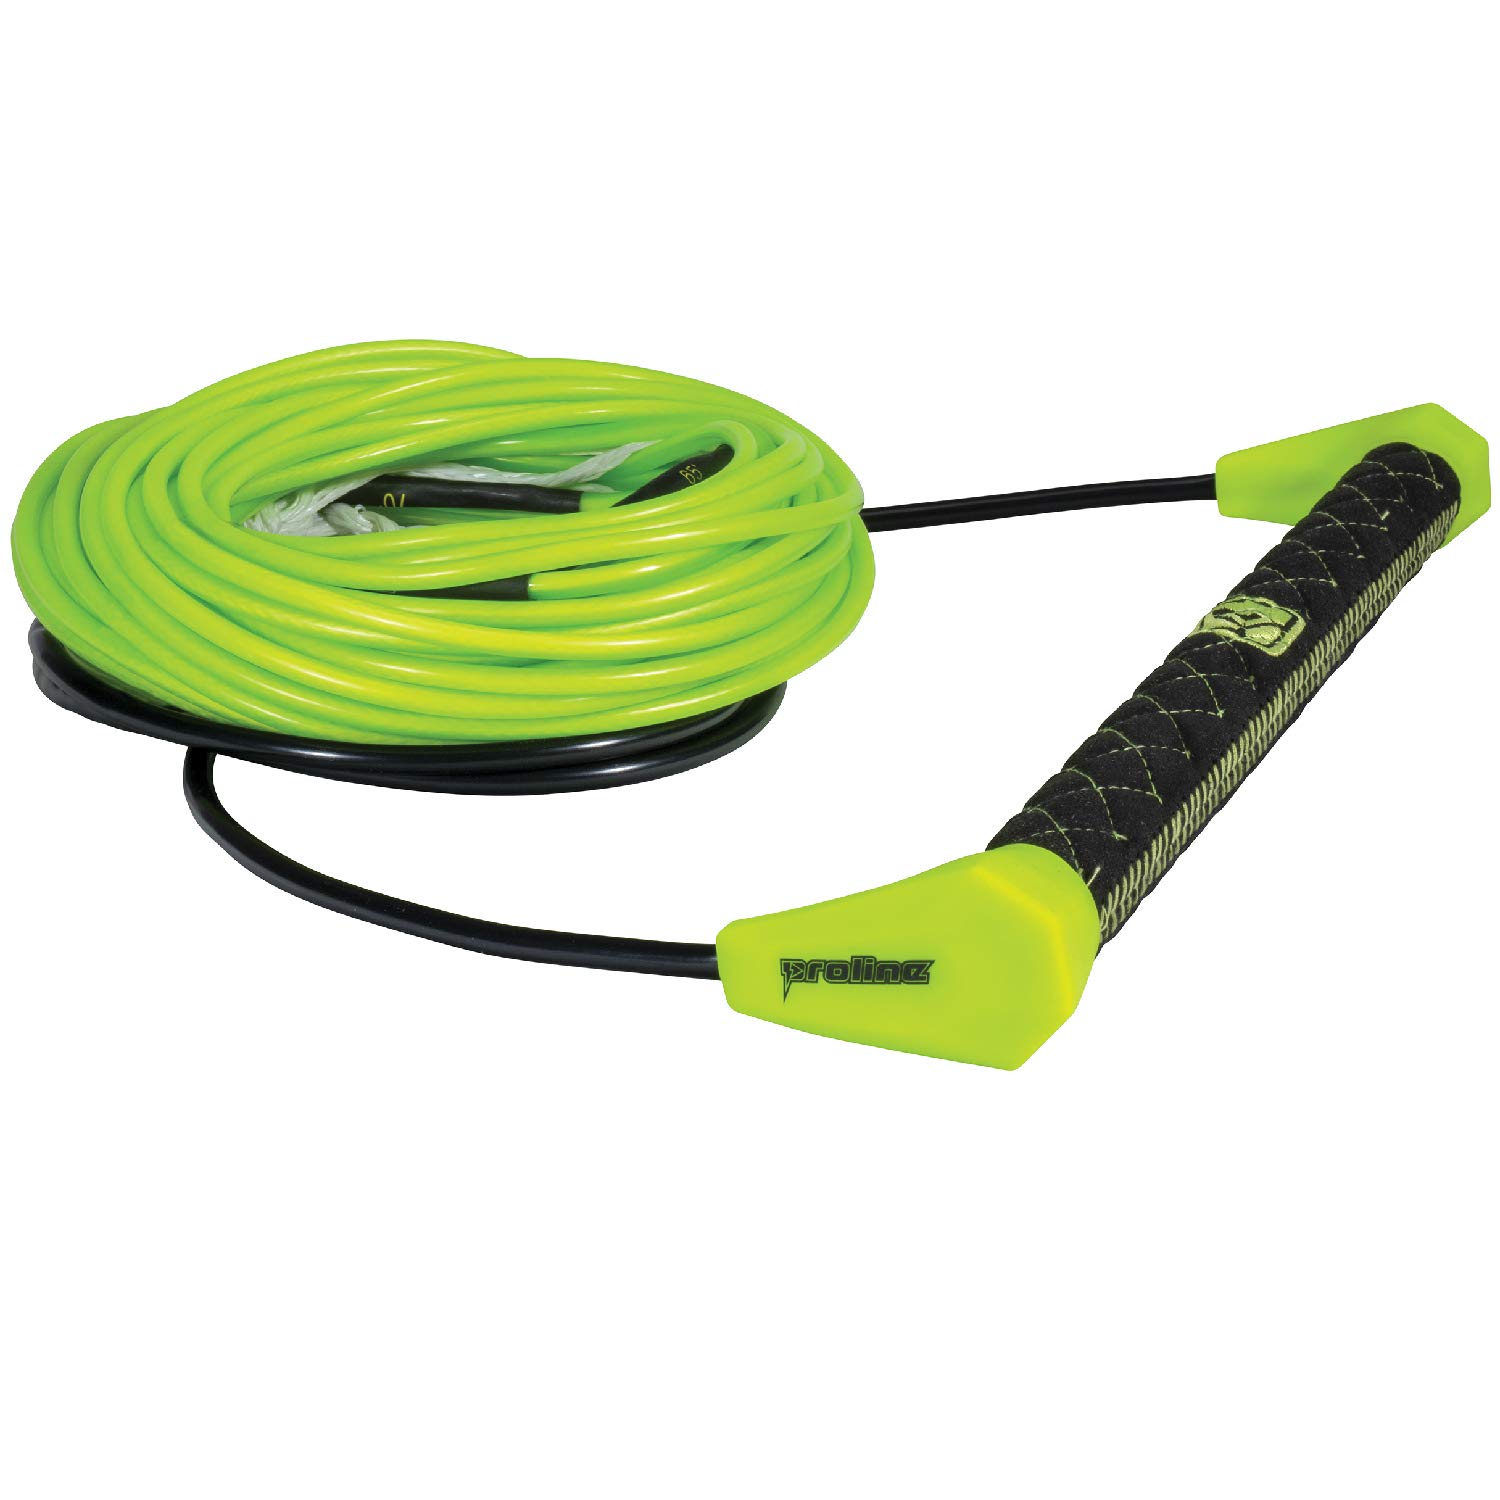 PROLINE 75' Wakeboard Rope and Handle, LGS Package - Volt (Yellow) by PROLINE